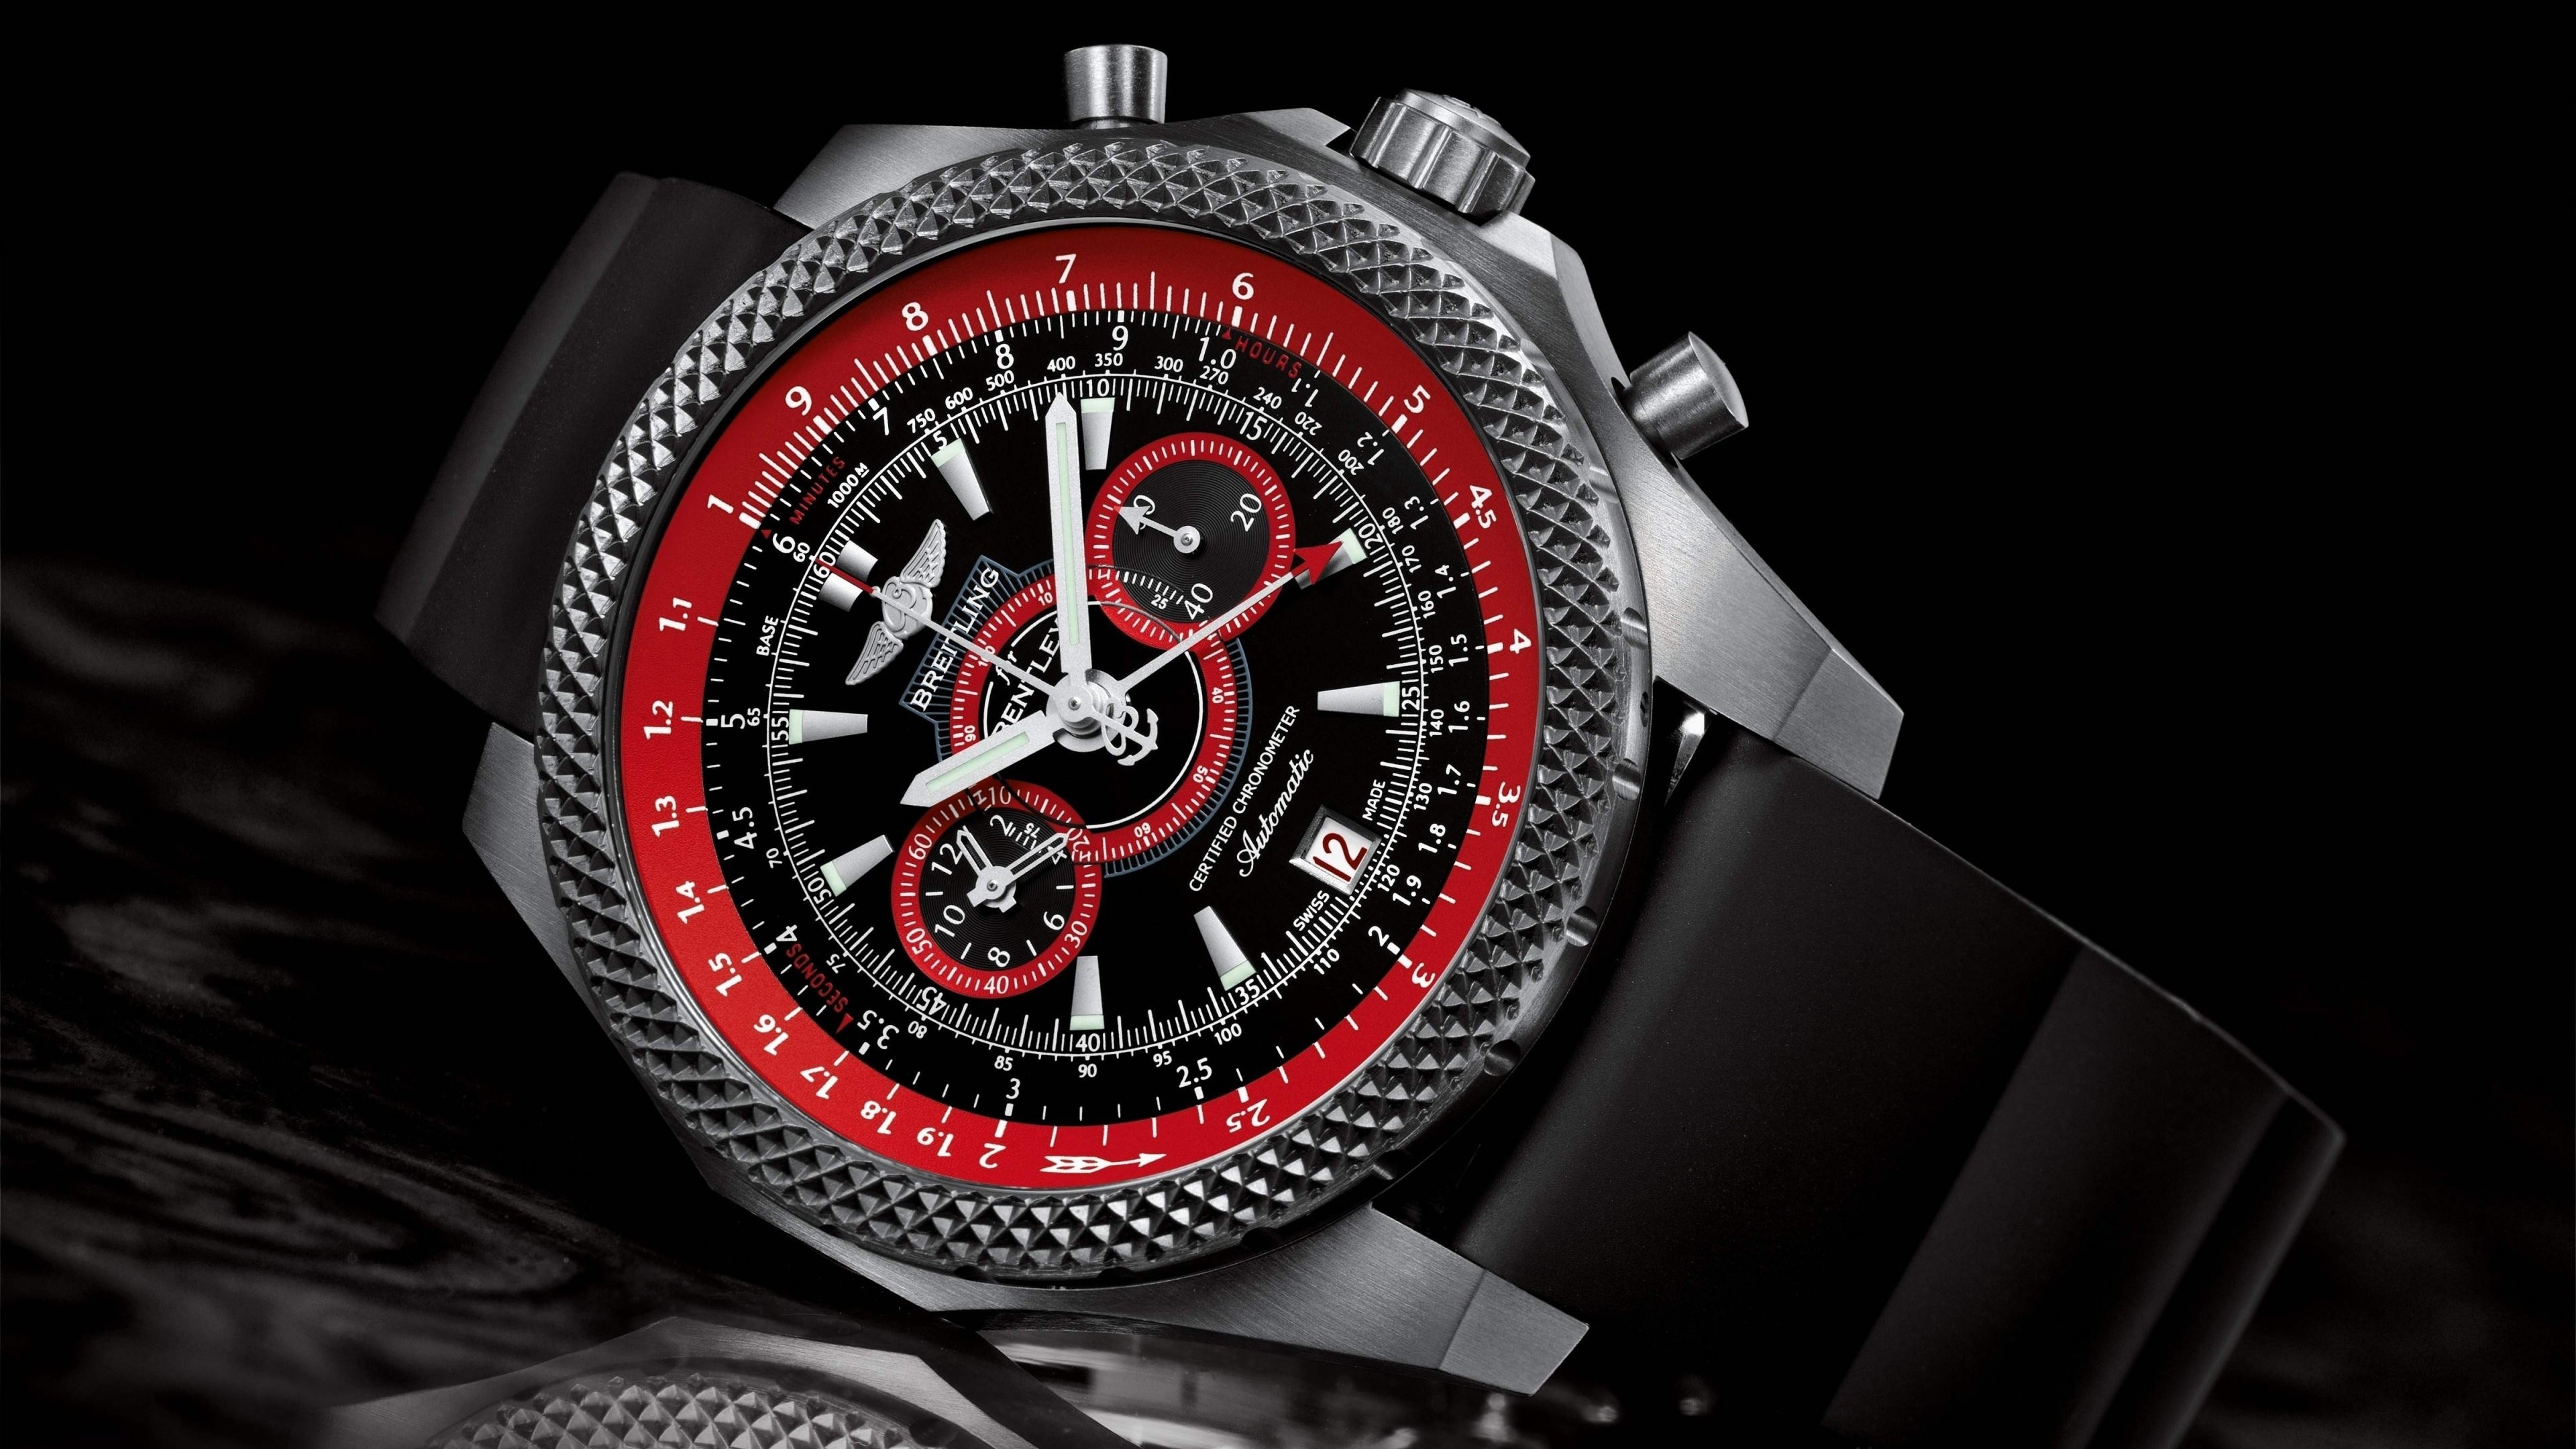 Breitling Watch Wallpaper for Desktop 4K 3840x2160